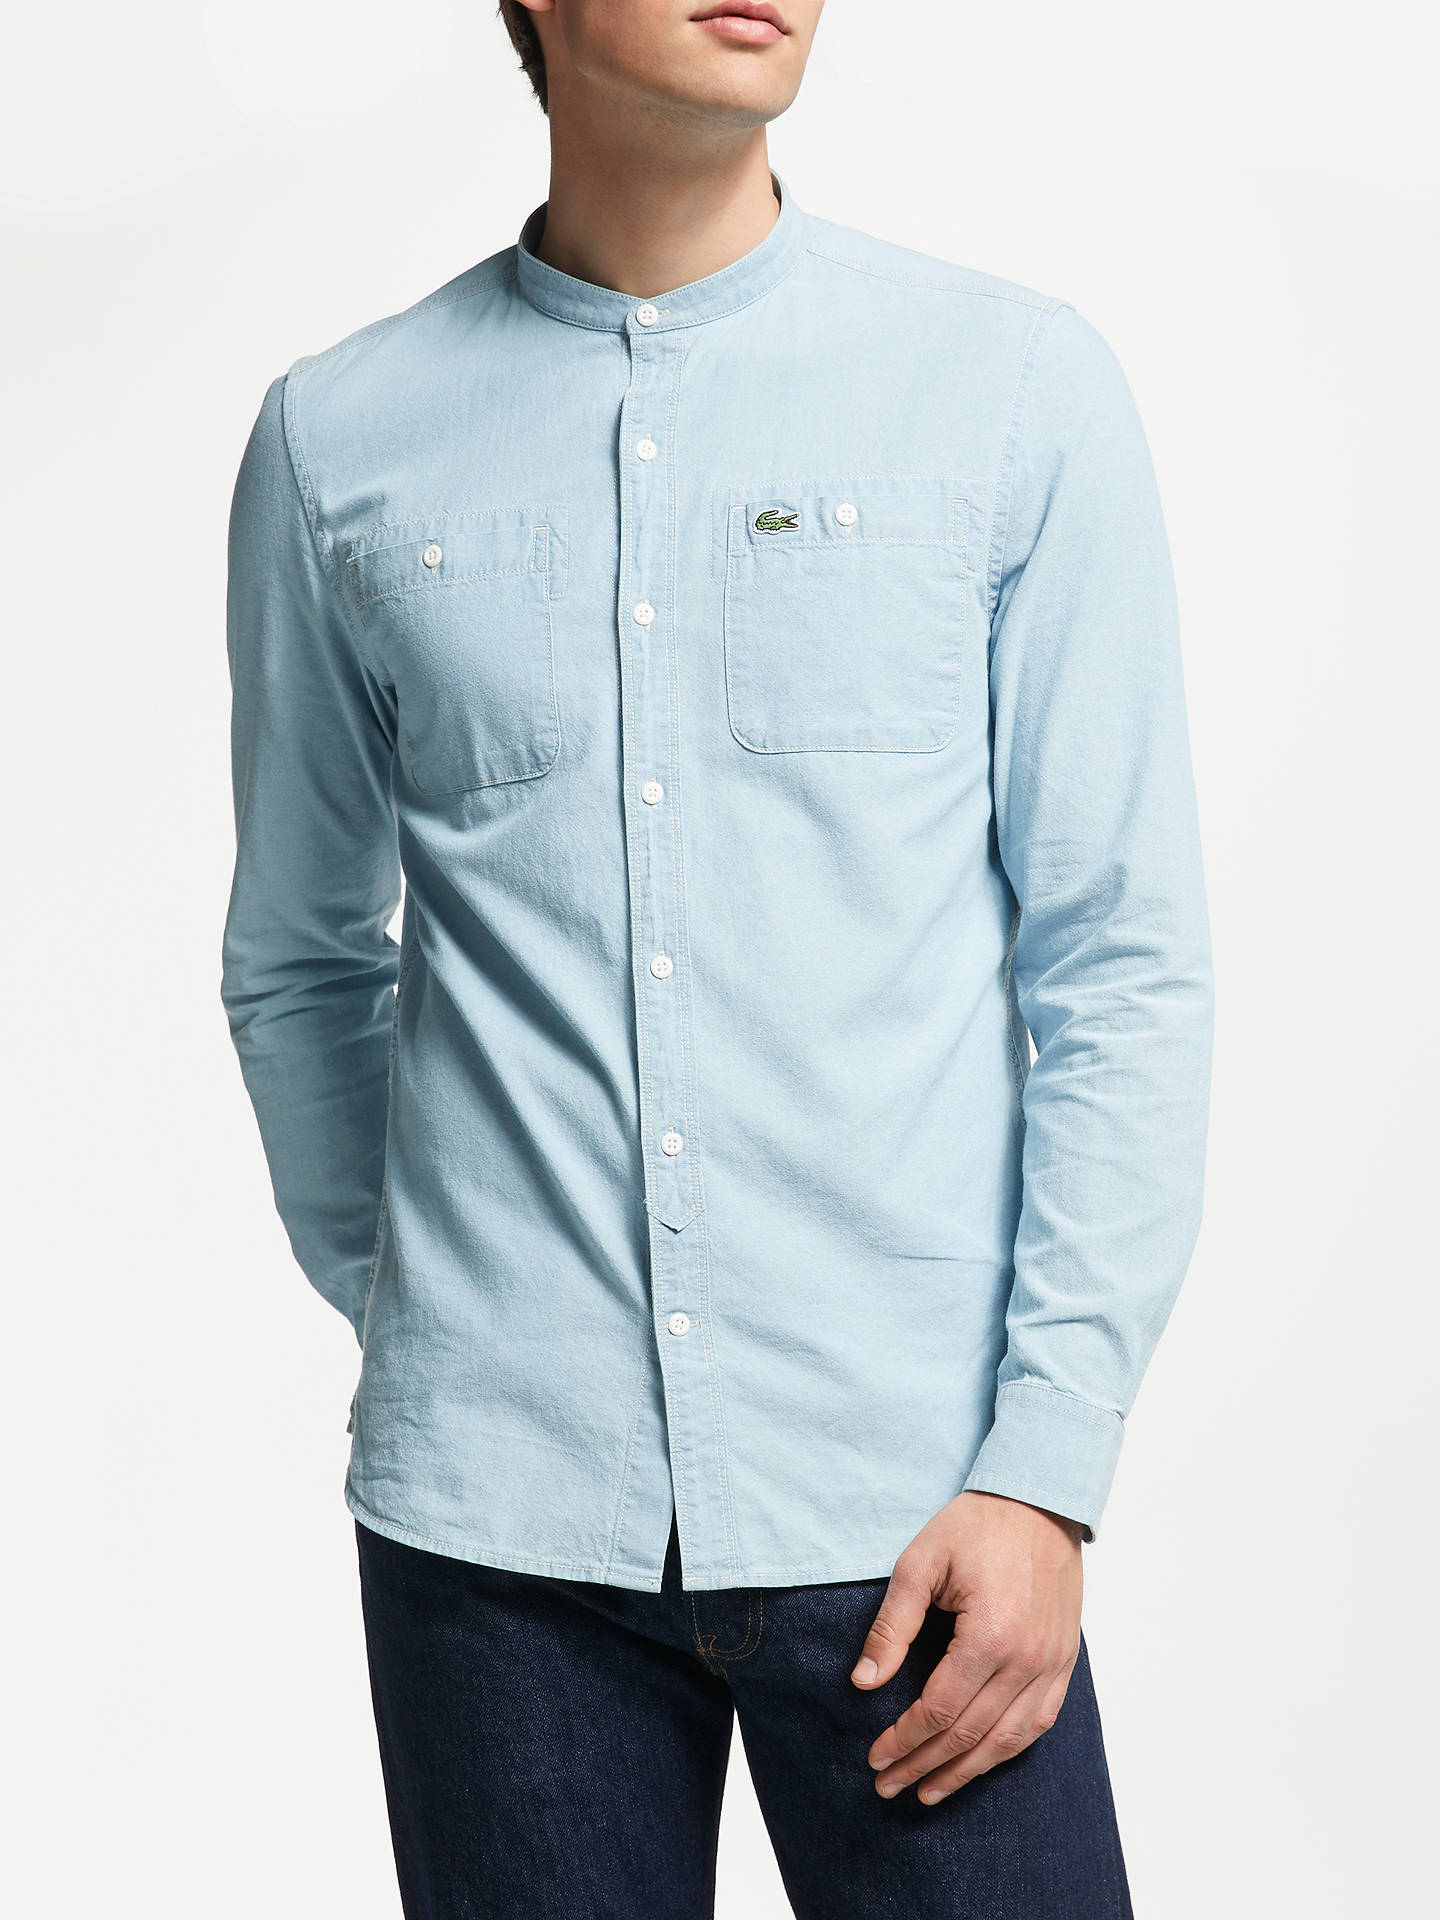 918330d10 View All Men s Shirts. Previous Image Next Image. Buy Lacoste LIVE Grandad  Collar Long Sleeve Shirt